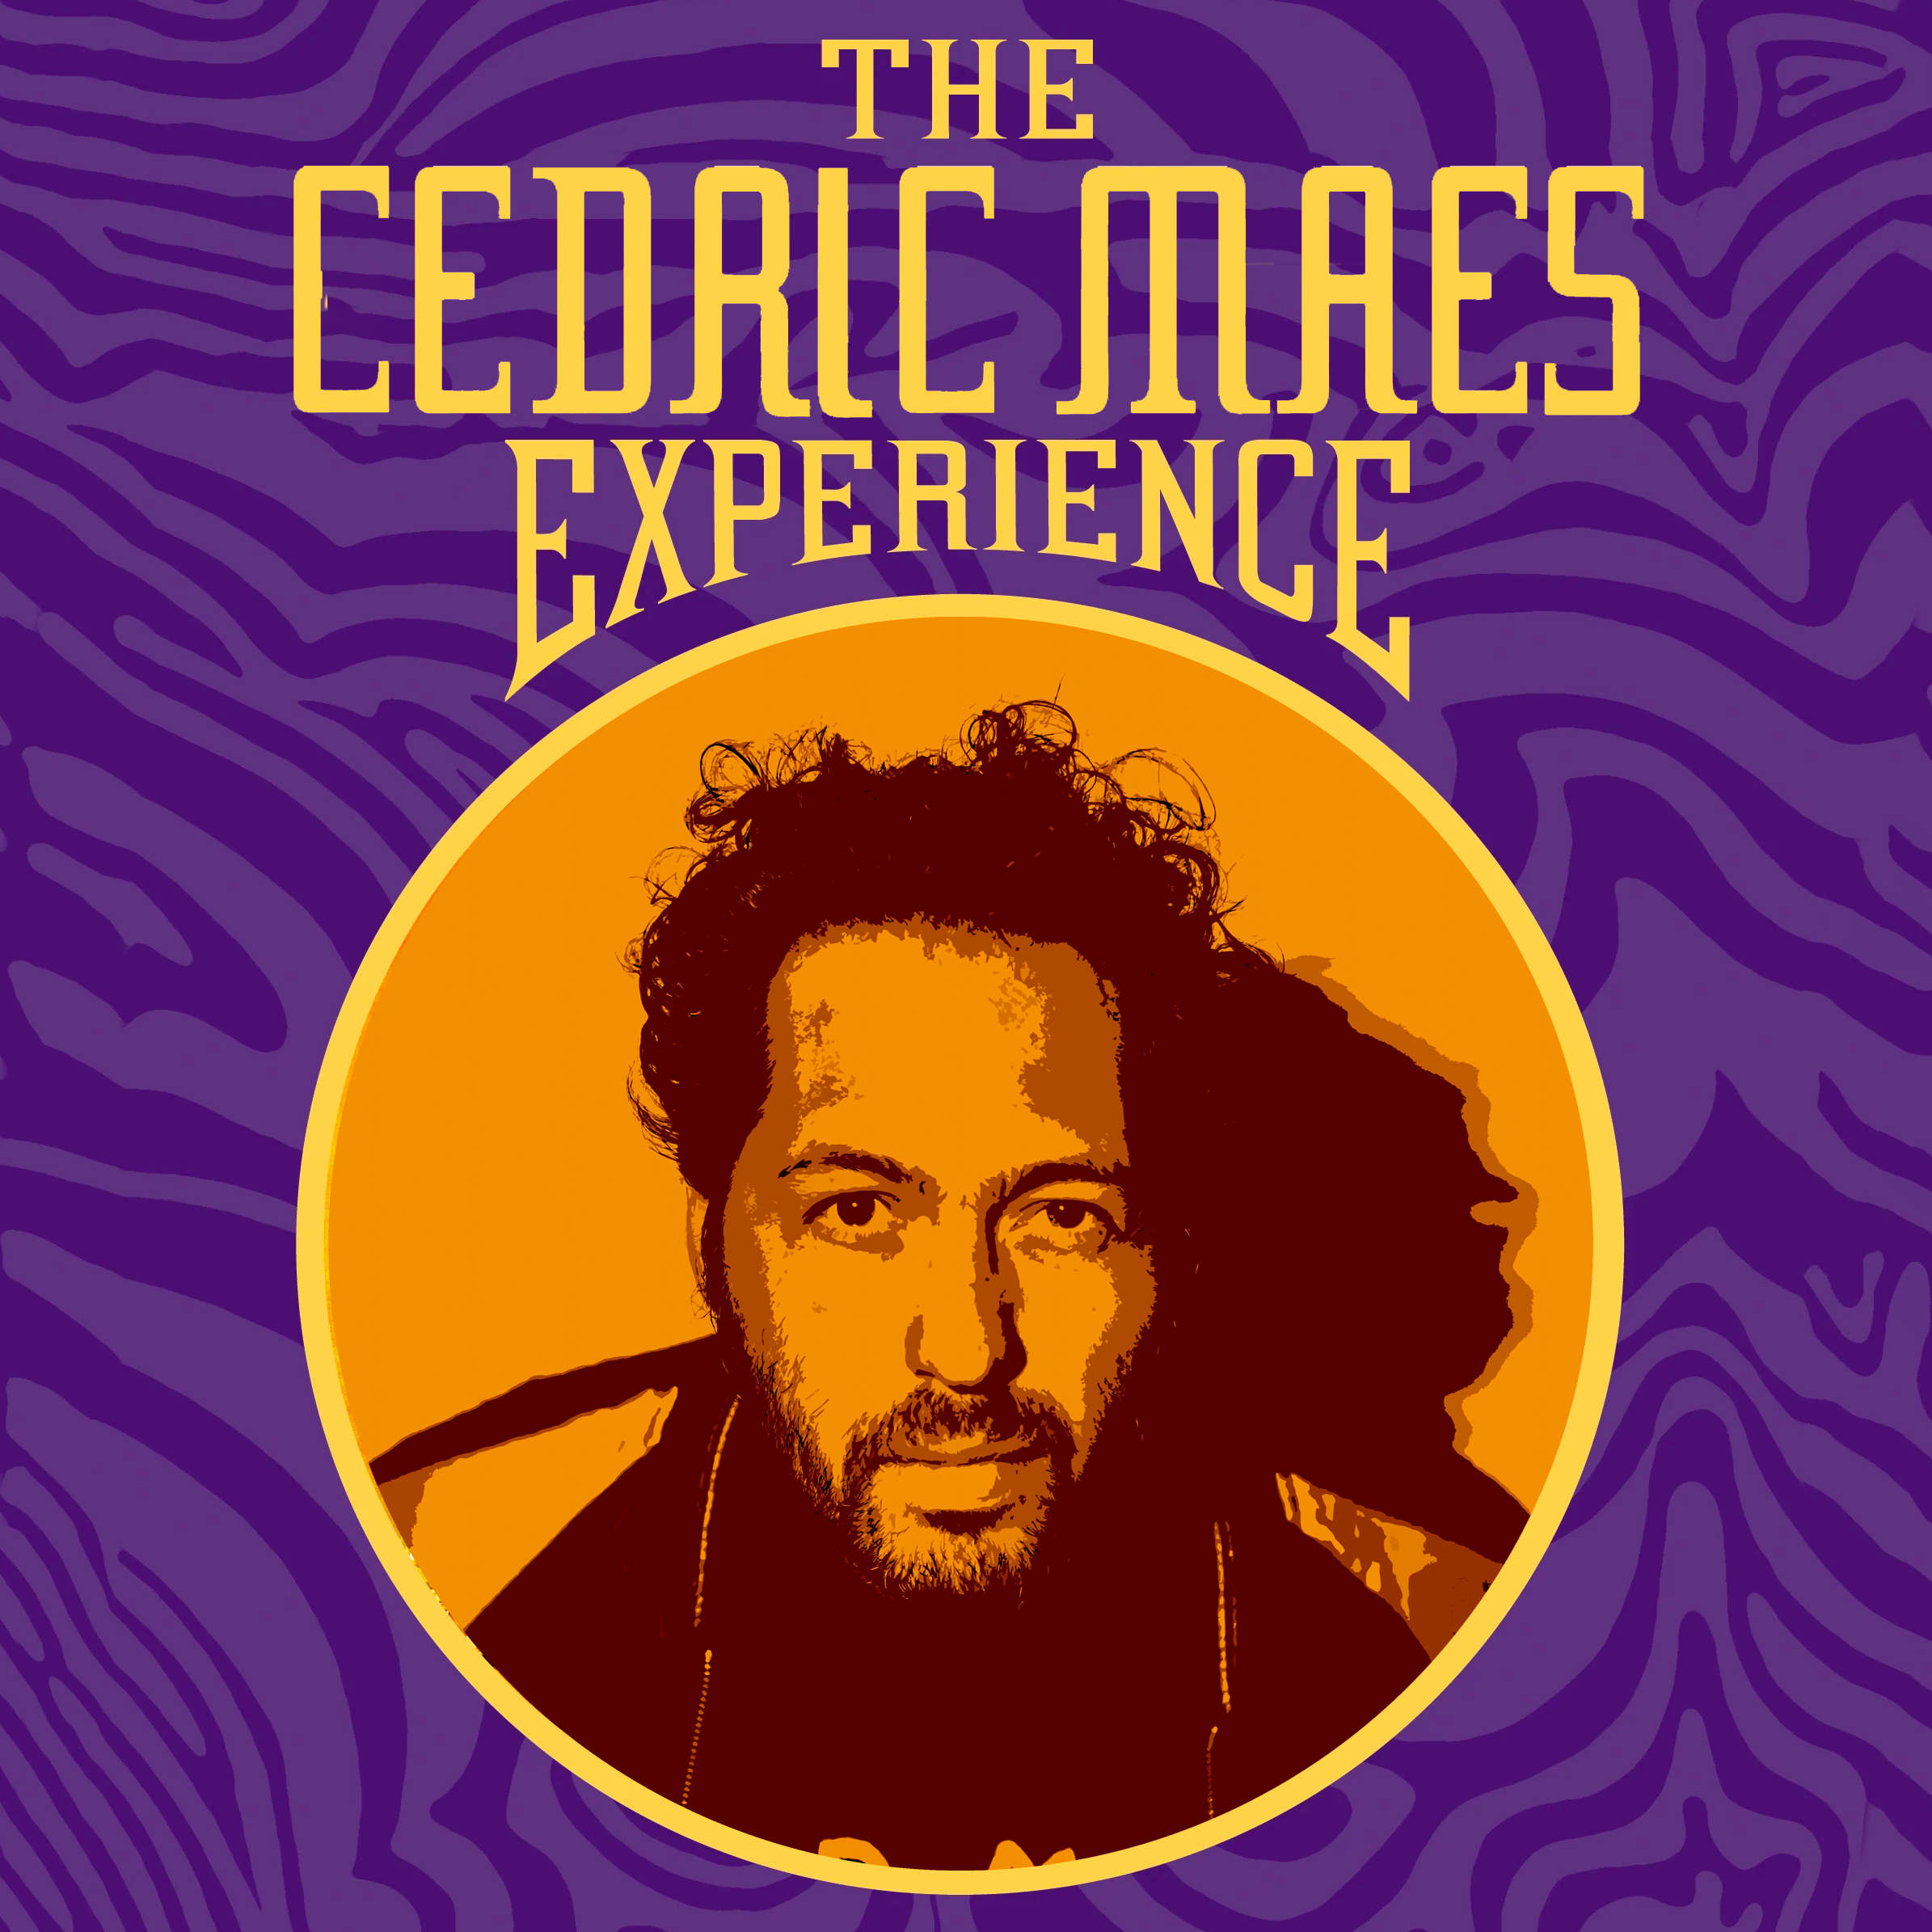 Cedric maes experience